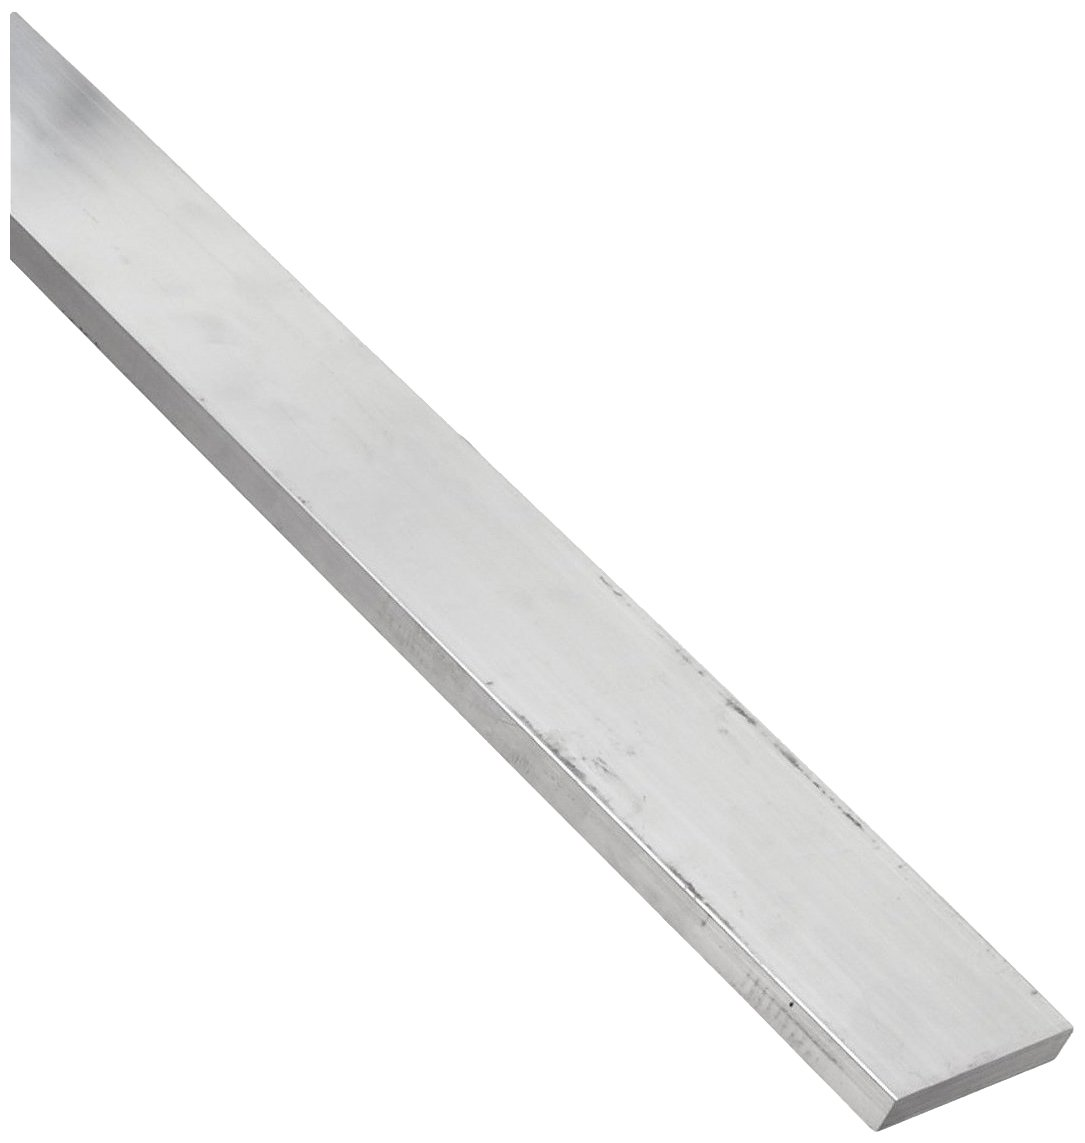 Aluminum 6061 Rectangular Bar, 1-1/2'' Width, 1/8'' Thick, 72'' Length by Small Parts